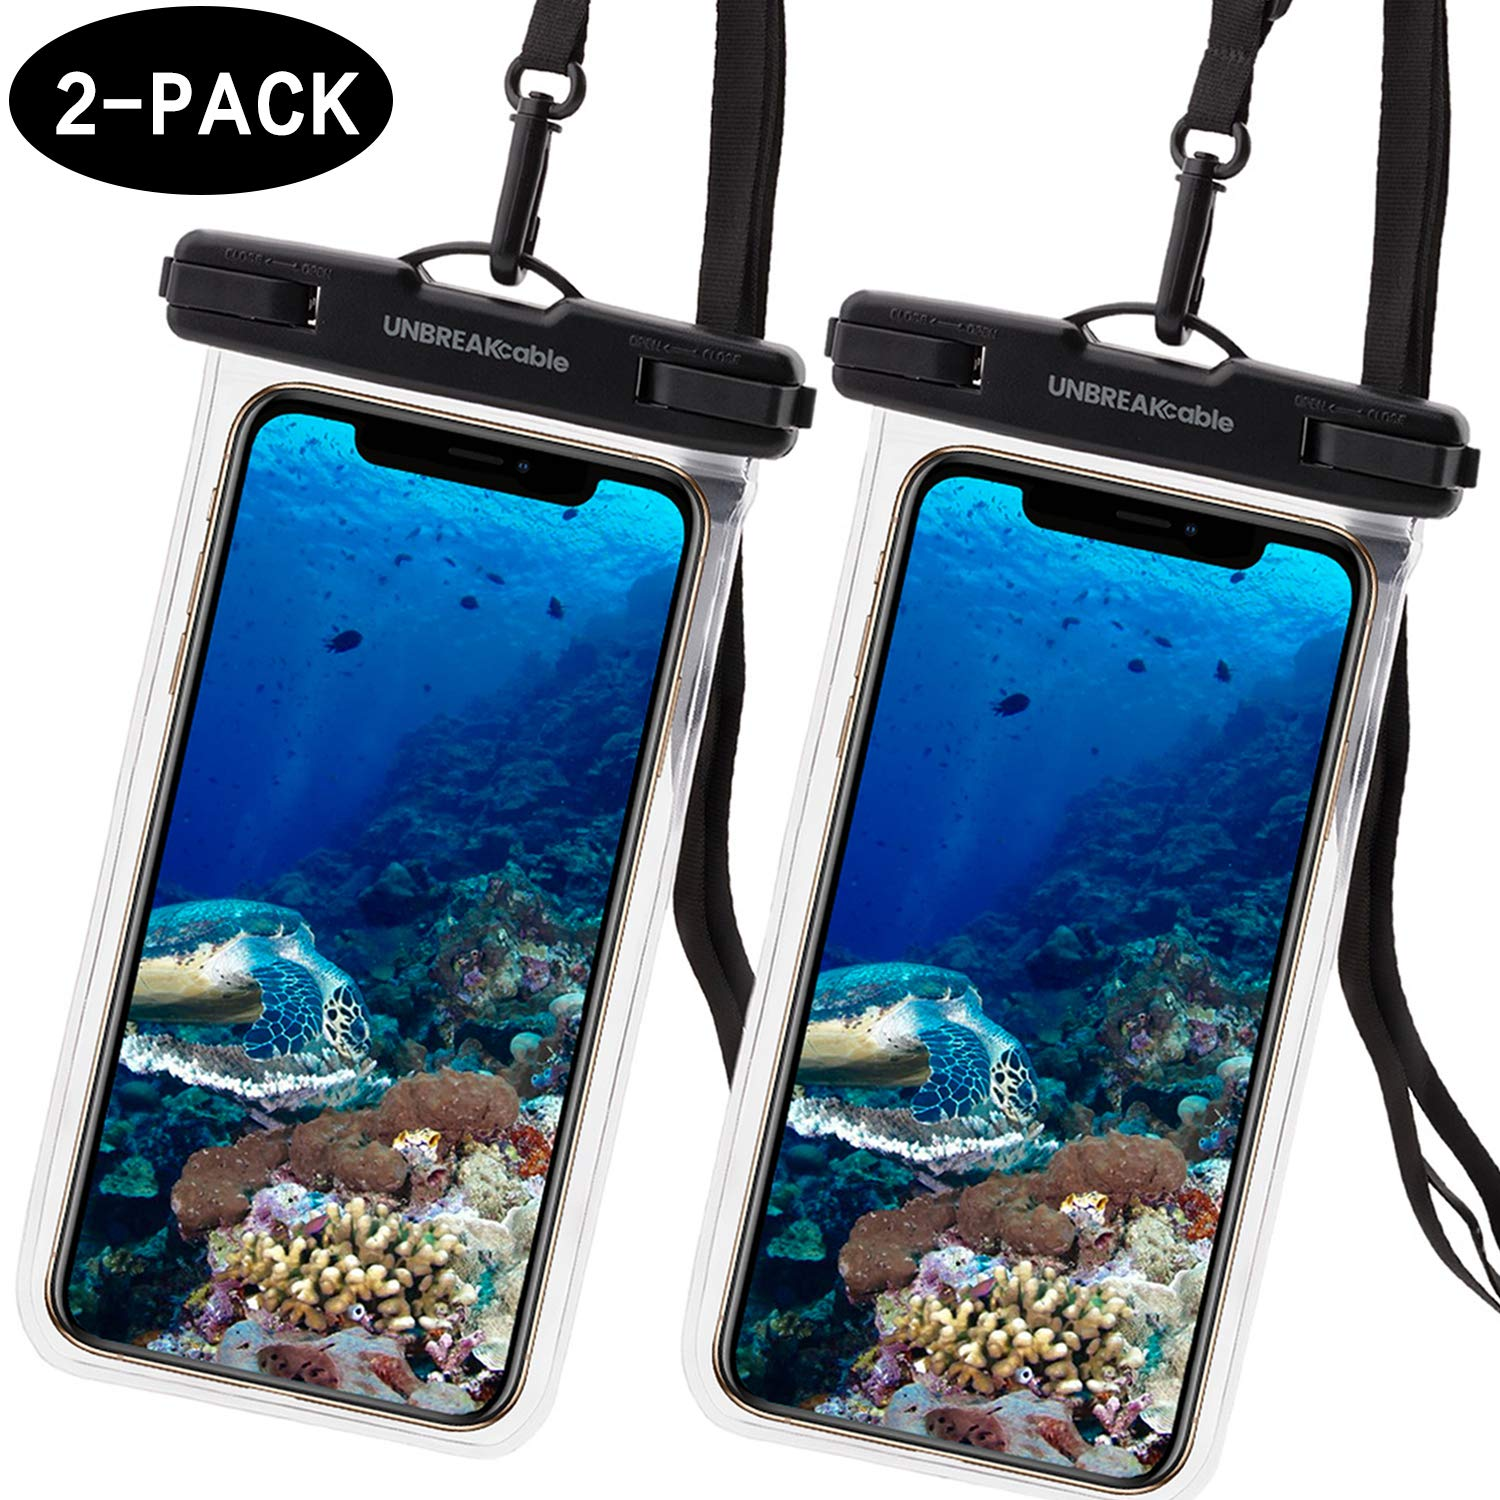 UNBREAKcable Universal Waterproof Case 2 Pack - IPX8 Waterproof Phone Pouch Dry Bag for iPhone Xs Max XR XS X 8 7 6s 6 Plus, Samsung S10+ S10 S10e S9 S8, Google Pixel 2, Up to 6.6 inch